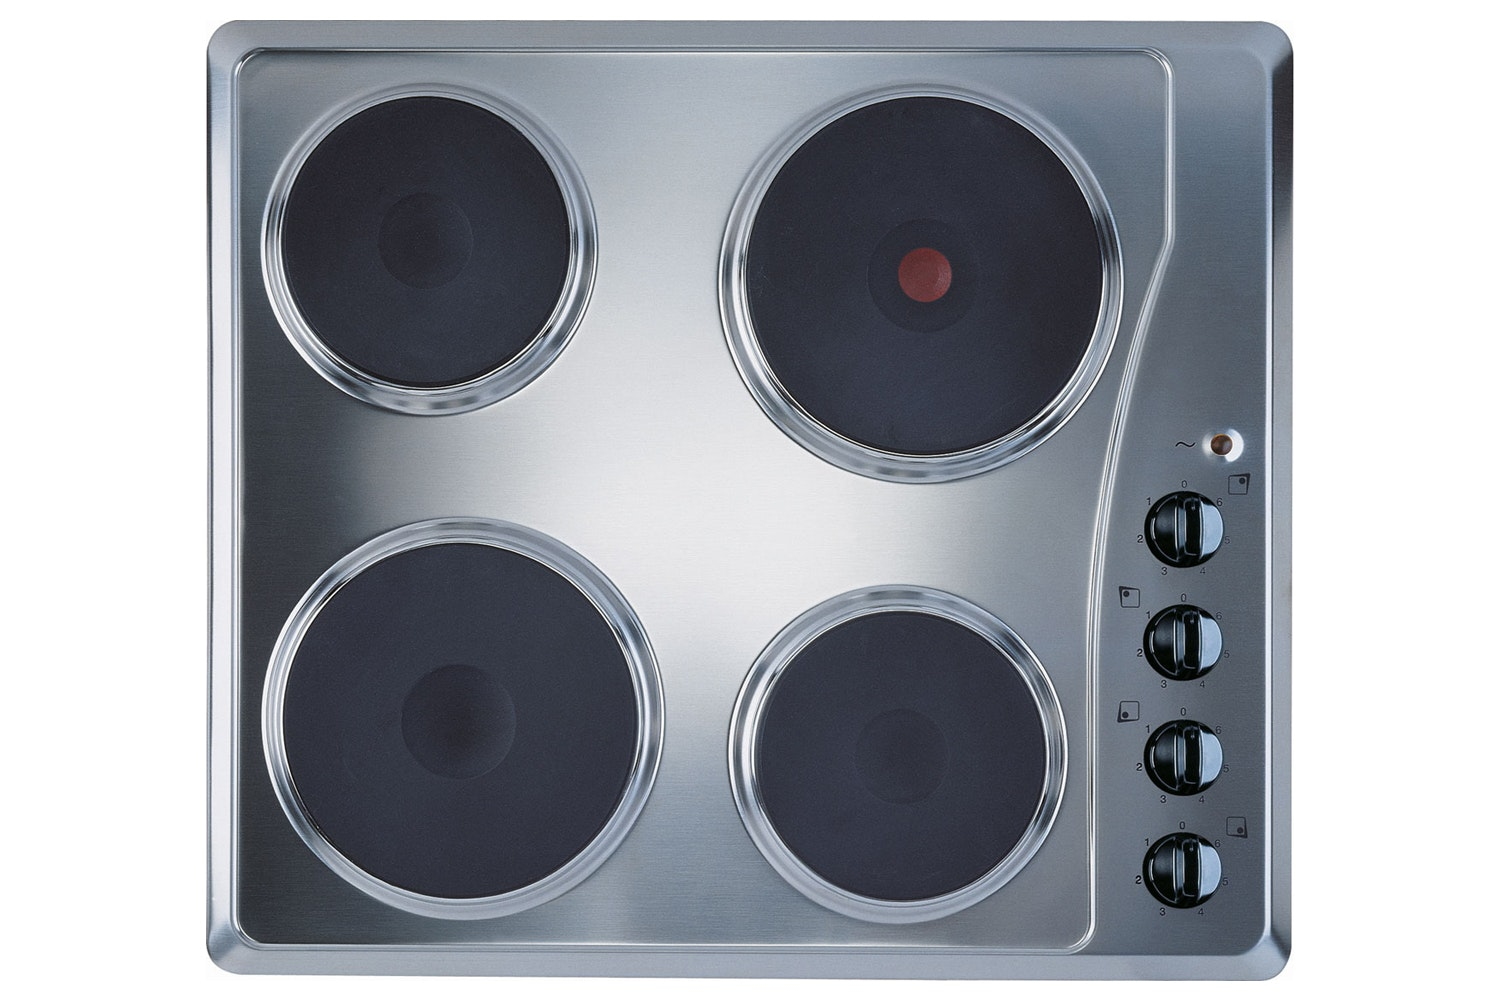 Indesit 4 Zones Electric Hob | TI60X